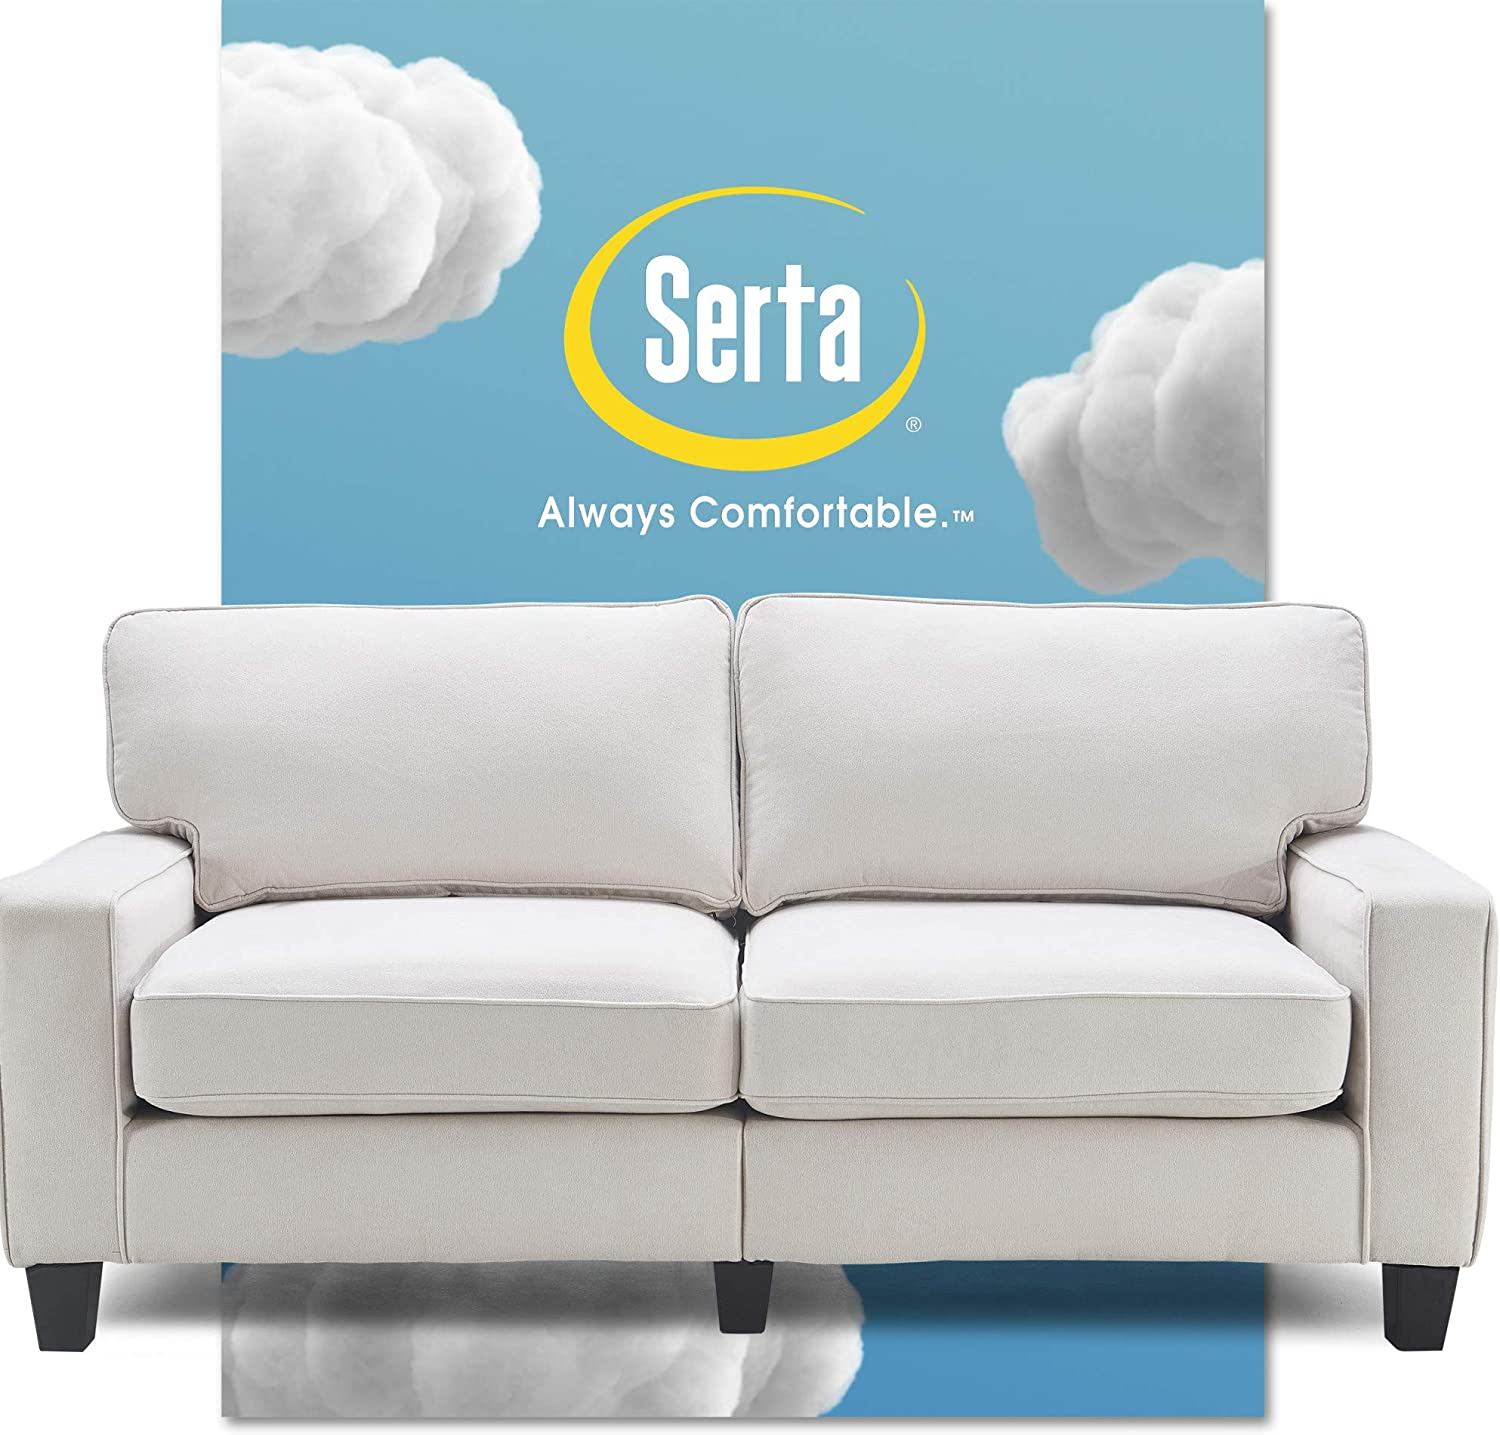 Serta Palisades Upholstered Sofas for Living Room Modern Design Couch, Straight Arms, Soft Fabric Upholstery, Tool-Free Assembly, 73